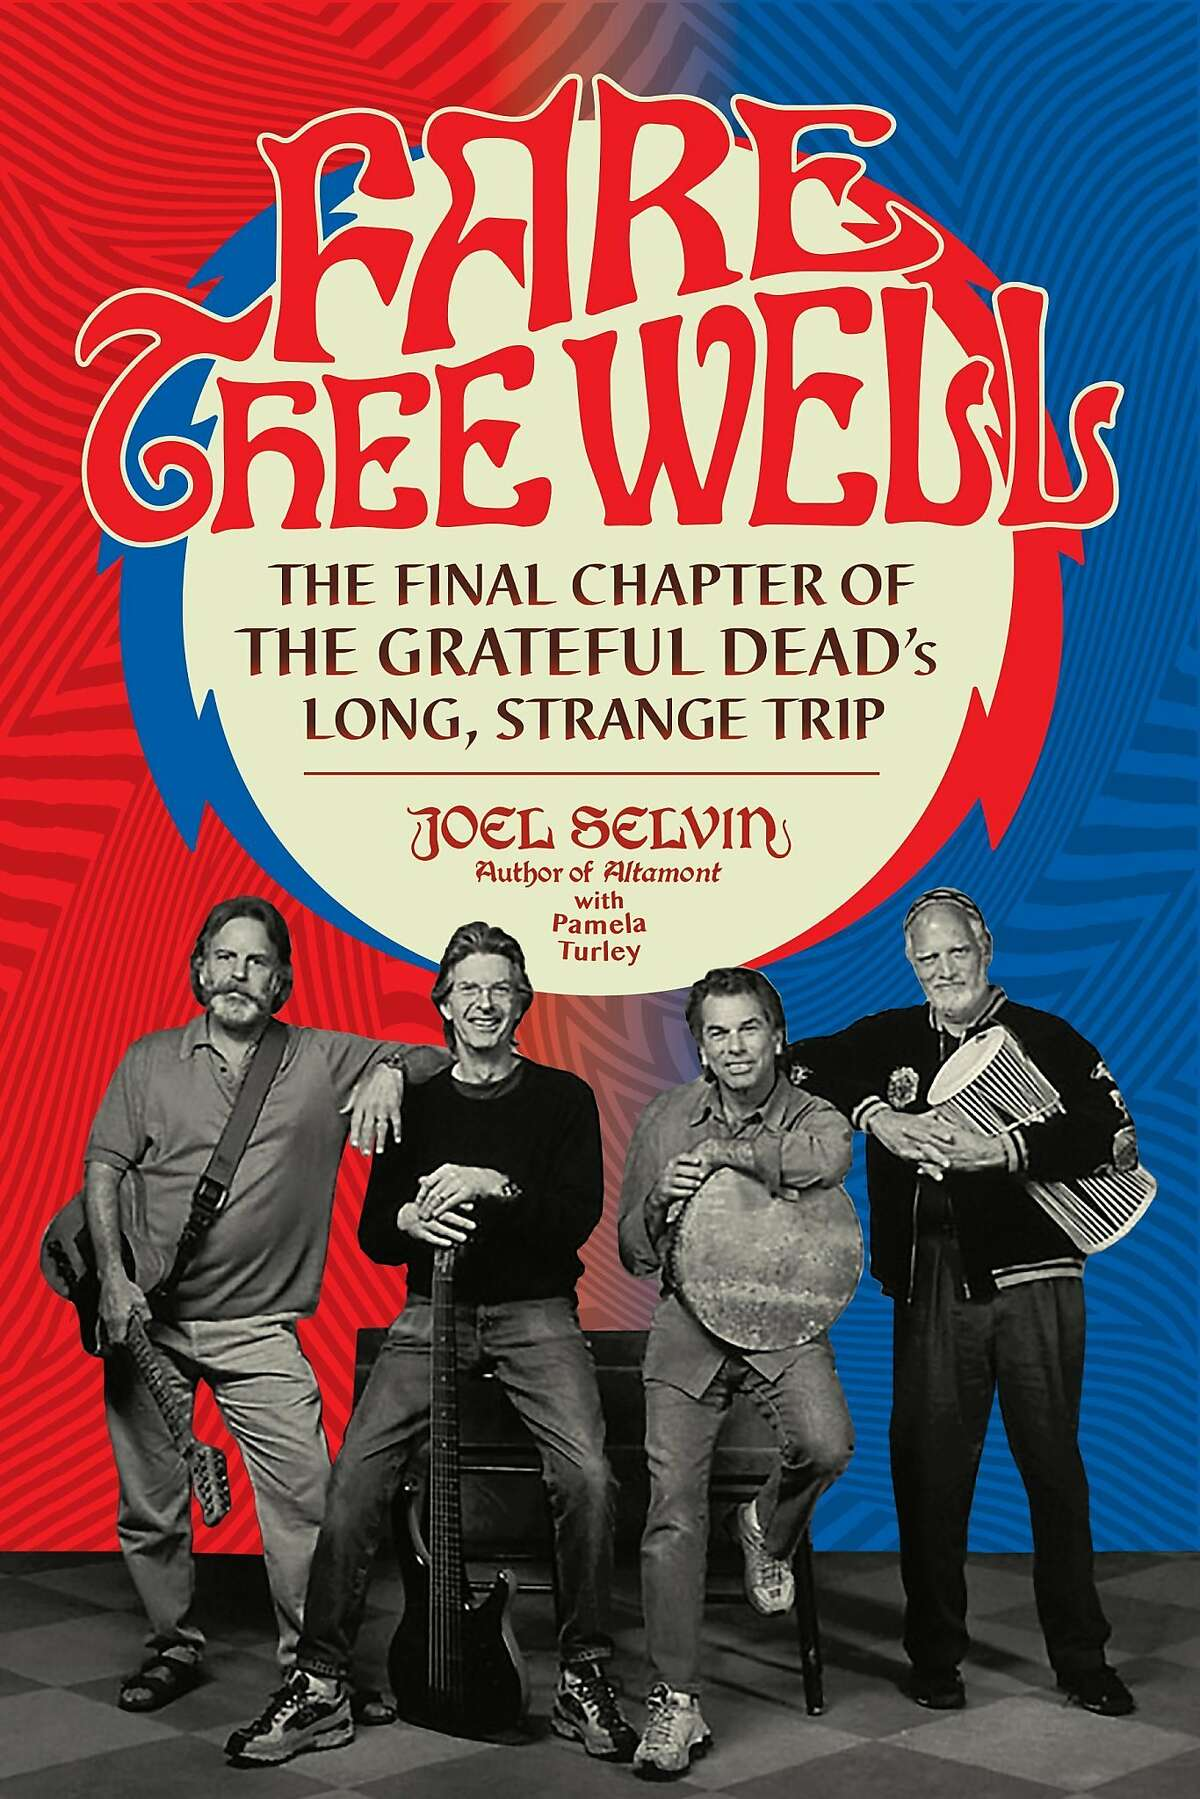 """The cover of """"Fare Thee Well,"""" by Joel Selvin with Pamela Turley"""